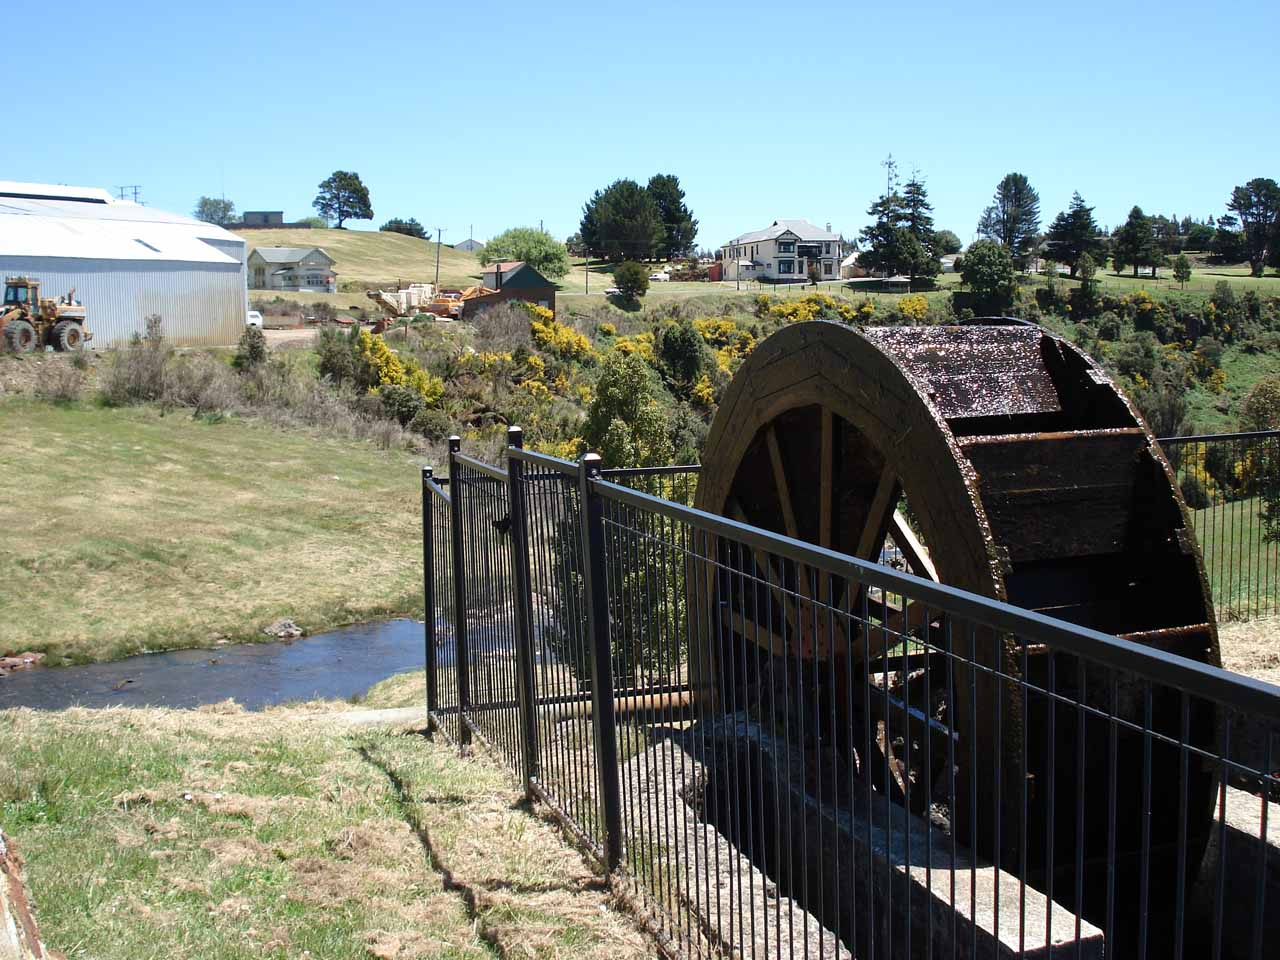 This was the Dudley Kenworthy Wheel that was at the top of Waratah Falls.  It was said to be the evidence that the hydro power generated by this wheel illuminated the town of Mt Bischoff (Waratah)